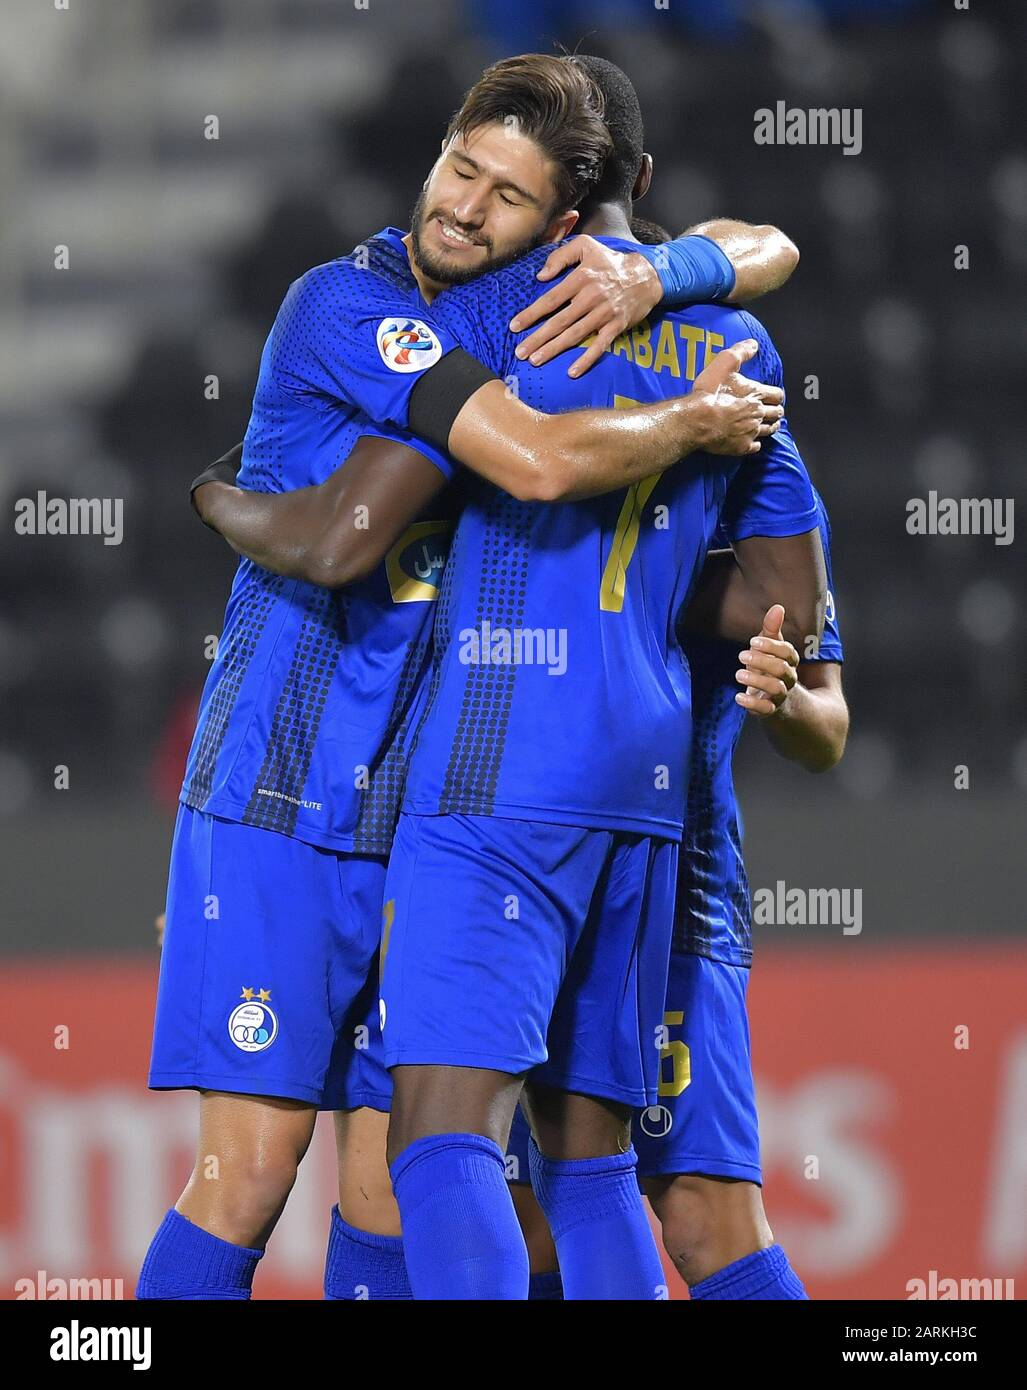 Cheick Diabate High Resolution Stock Photography and Images - Alamy